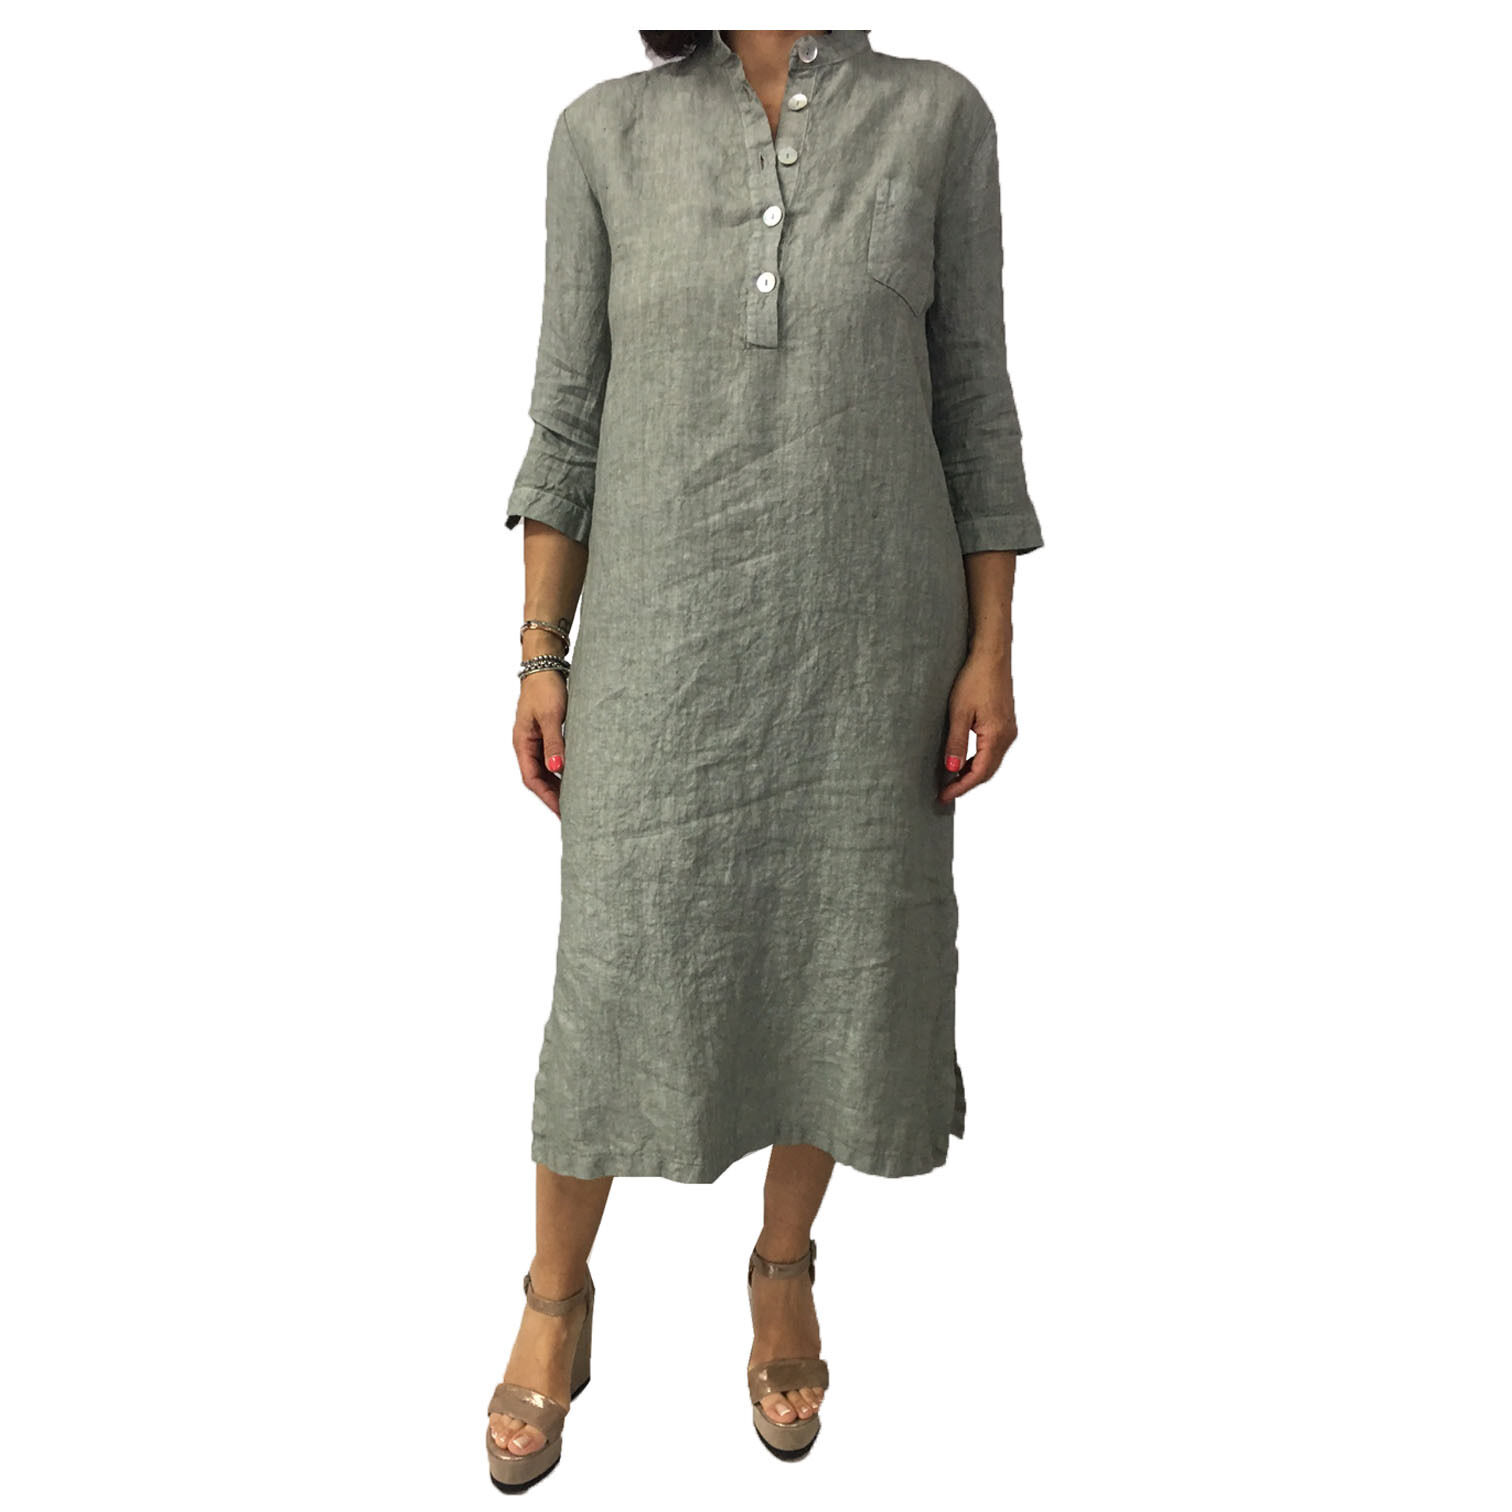 Mylab Women's Dress Sleeve 3 4 Sage Wash Used 100% Linen Made in